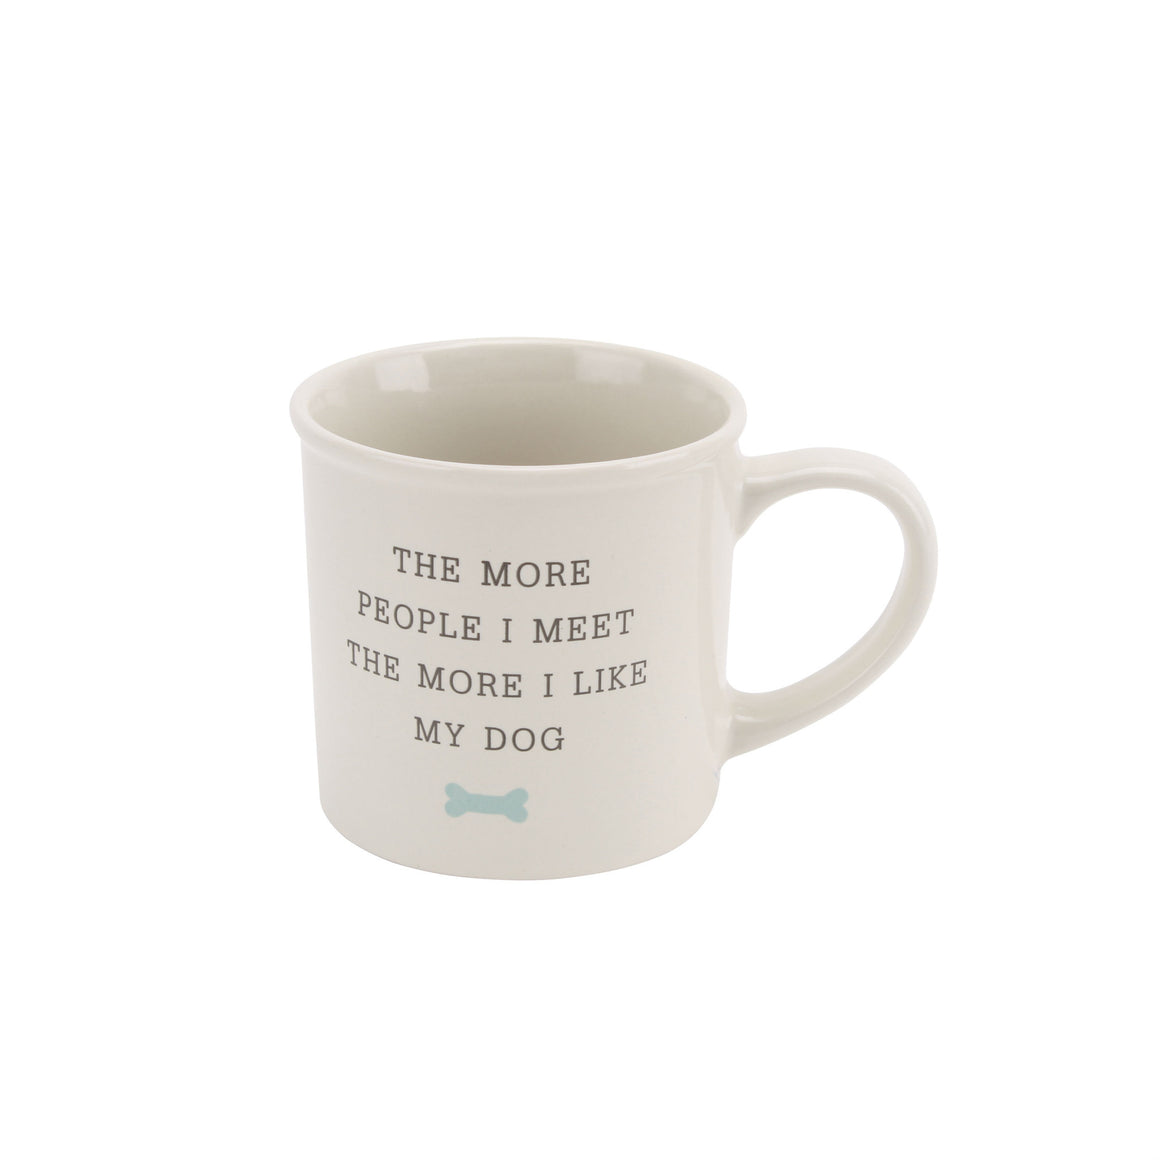 'The More People I Meet The More I Like My Dog' Mug - The Love Trees